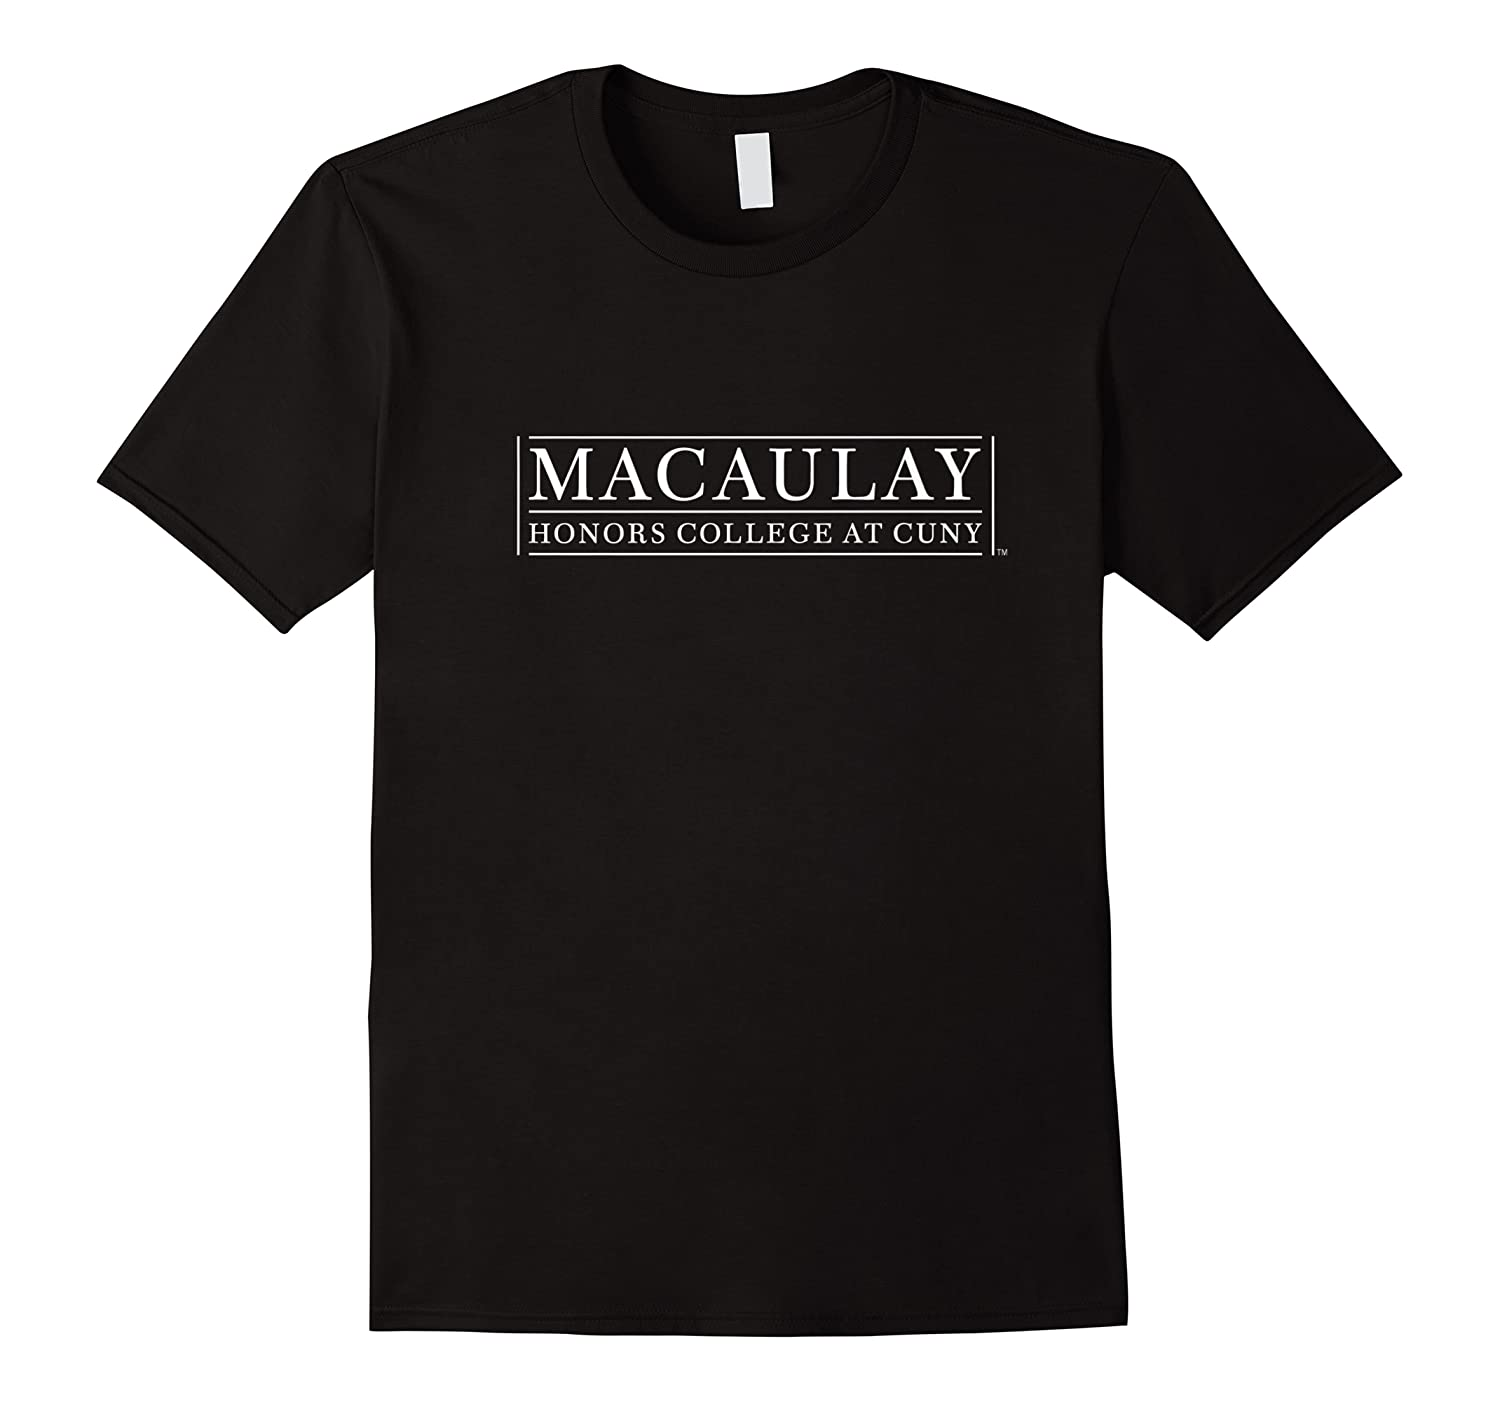 Macaulay Honors College Mountain Lions T-shirt Ppmhc01